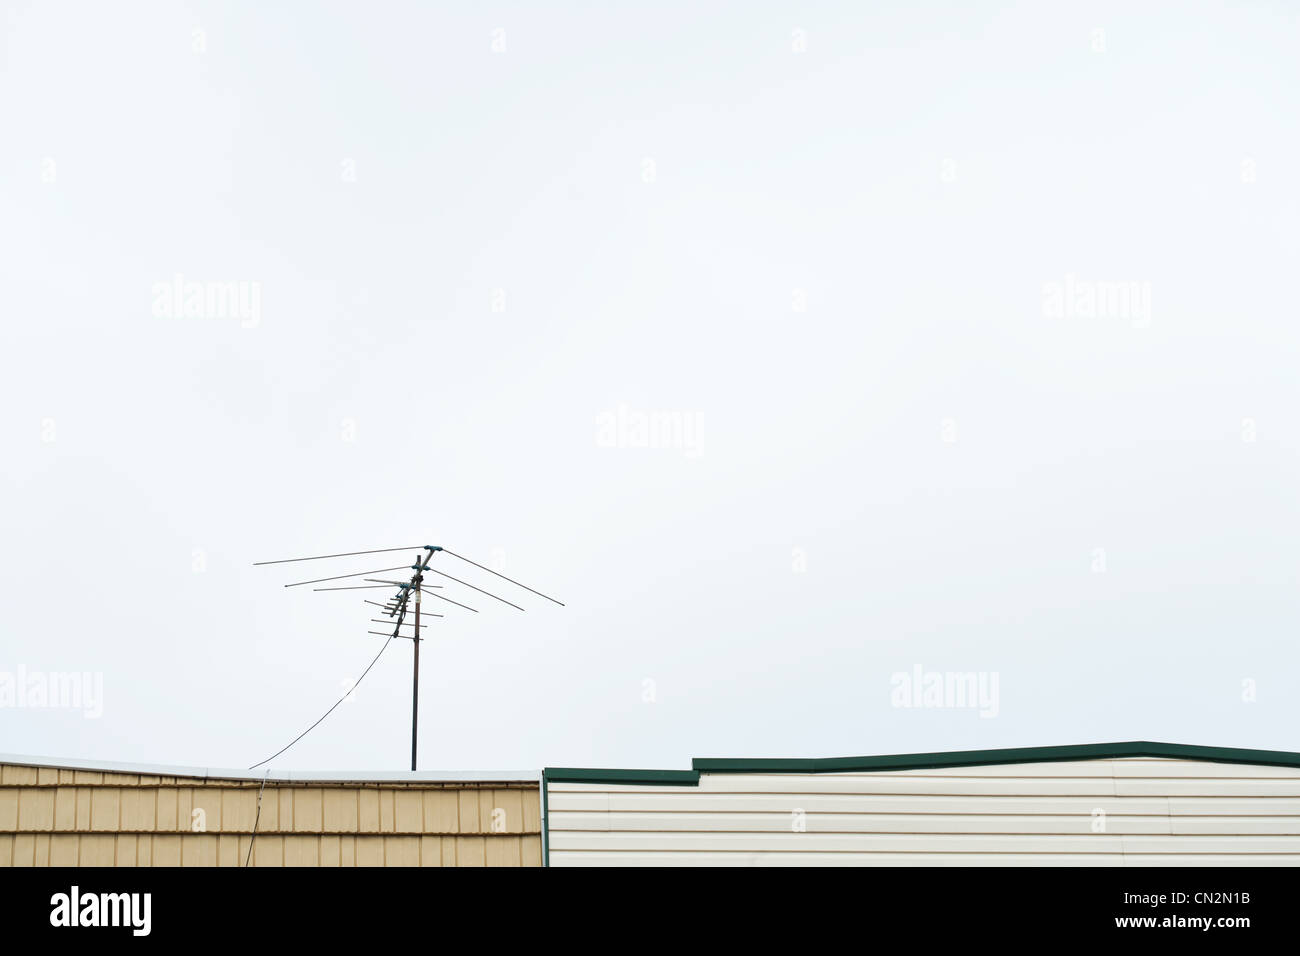 Television aerial on roof - Stock Image